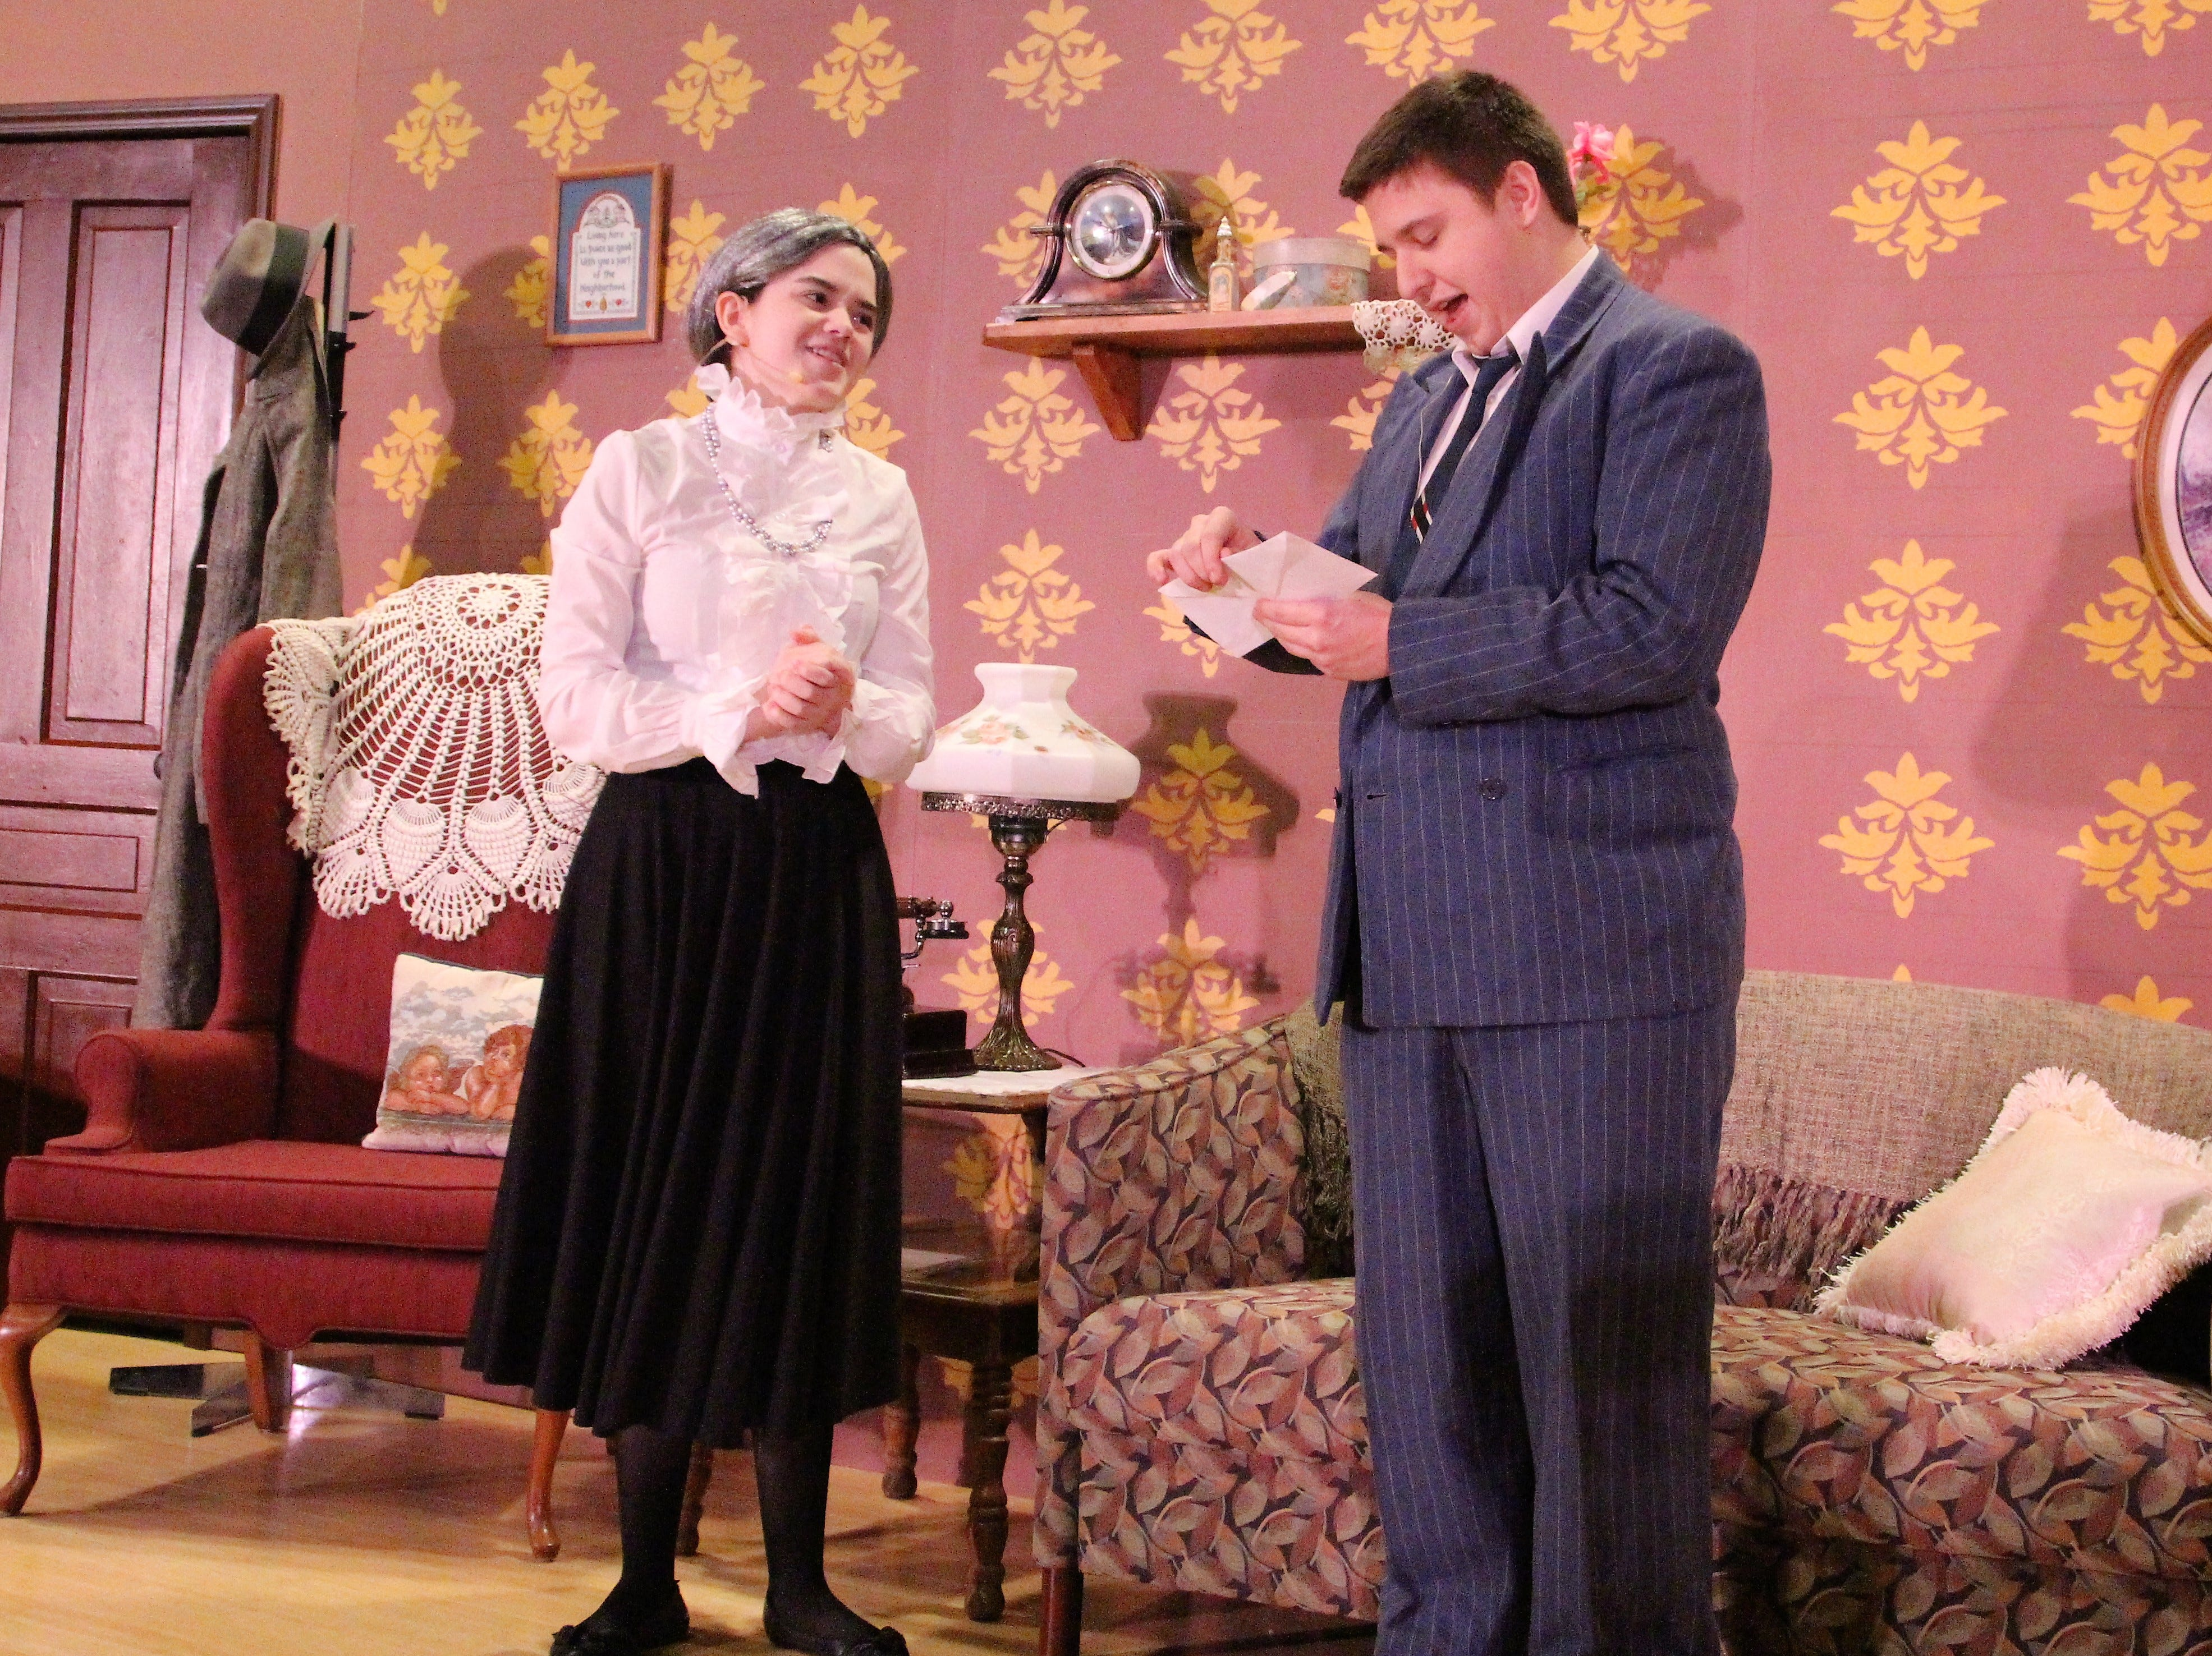 Mortimer Brewster, played by Darren Sites, talks to his old aunt Abbey, played by Hailee Baer. The play follows the Brewster family of Brooklyn, New York and their murderous exploits. Directed by OSU alumna Hannah Fuller, the production will be open to the public Thursday and Friday at 7:30 p.m. in the Morrill Hall Auditorium.